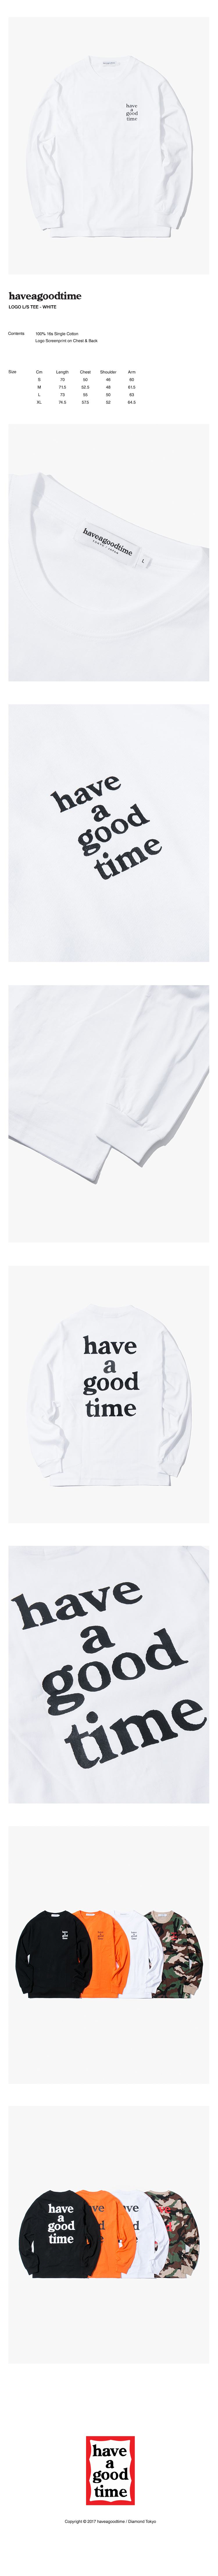 해브 어 굿 타임(HAVE A GOOD TIME) Logo L/S T-Shirt - White